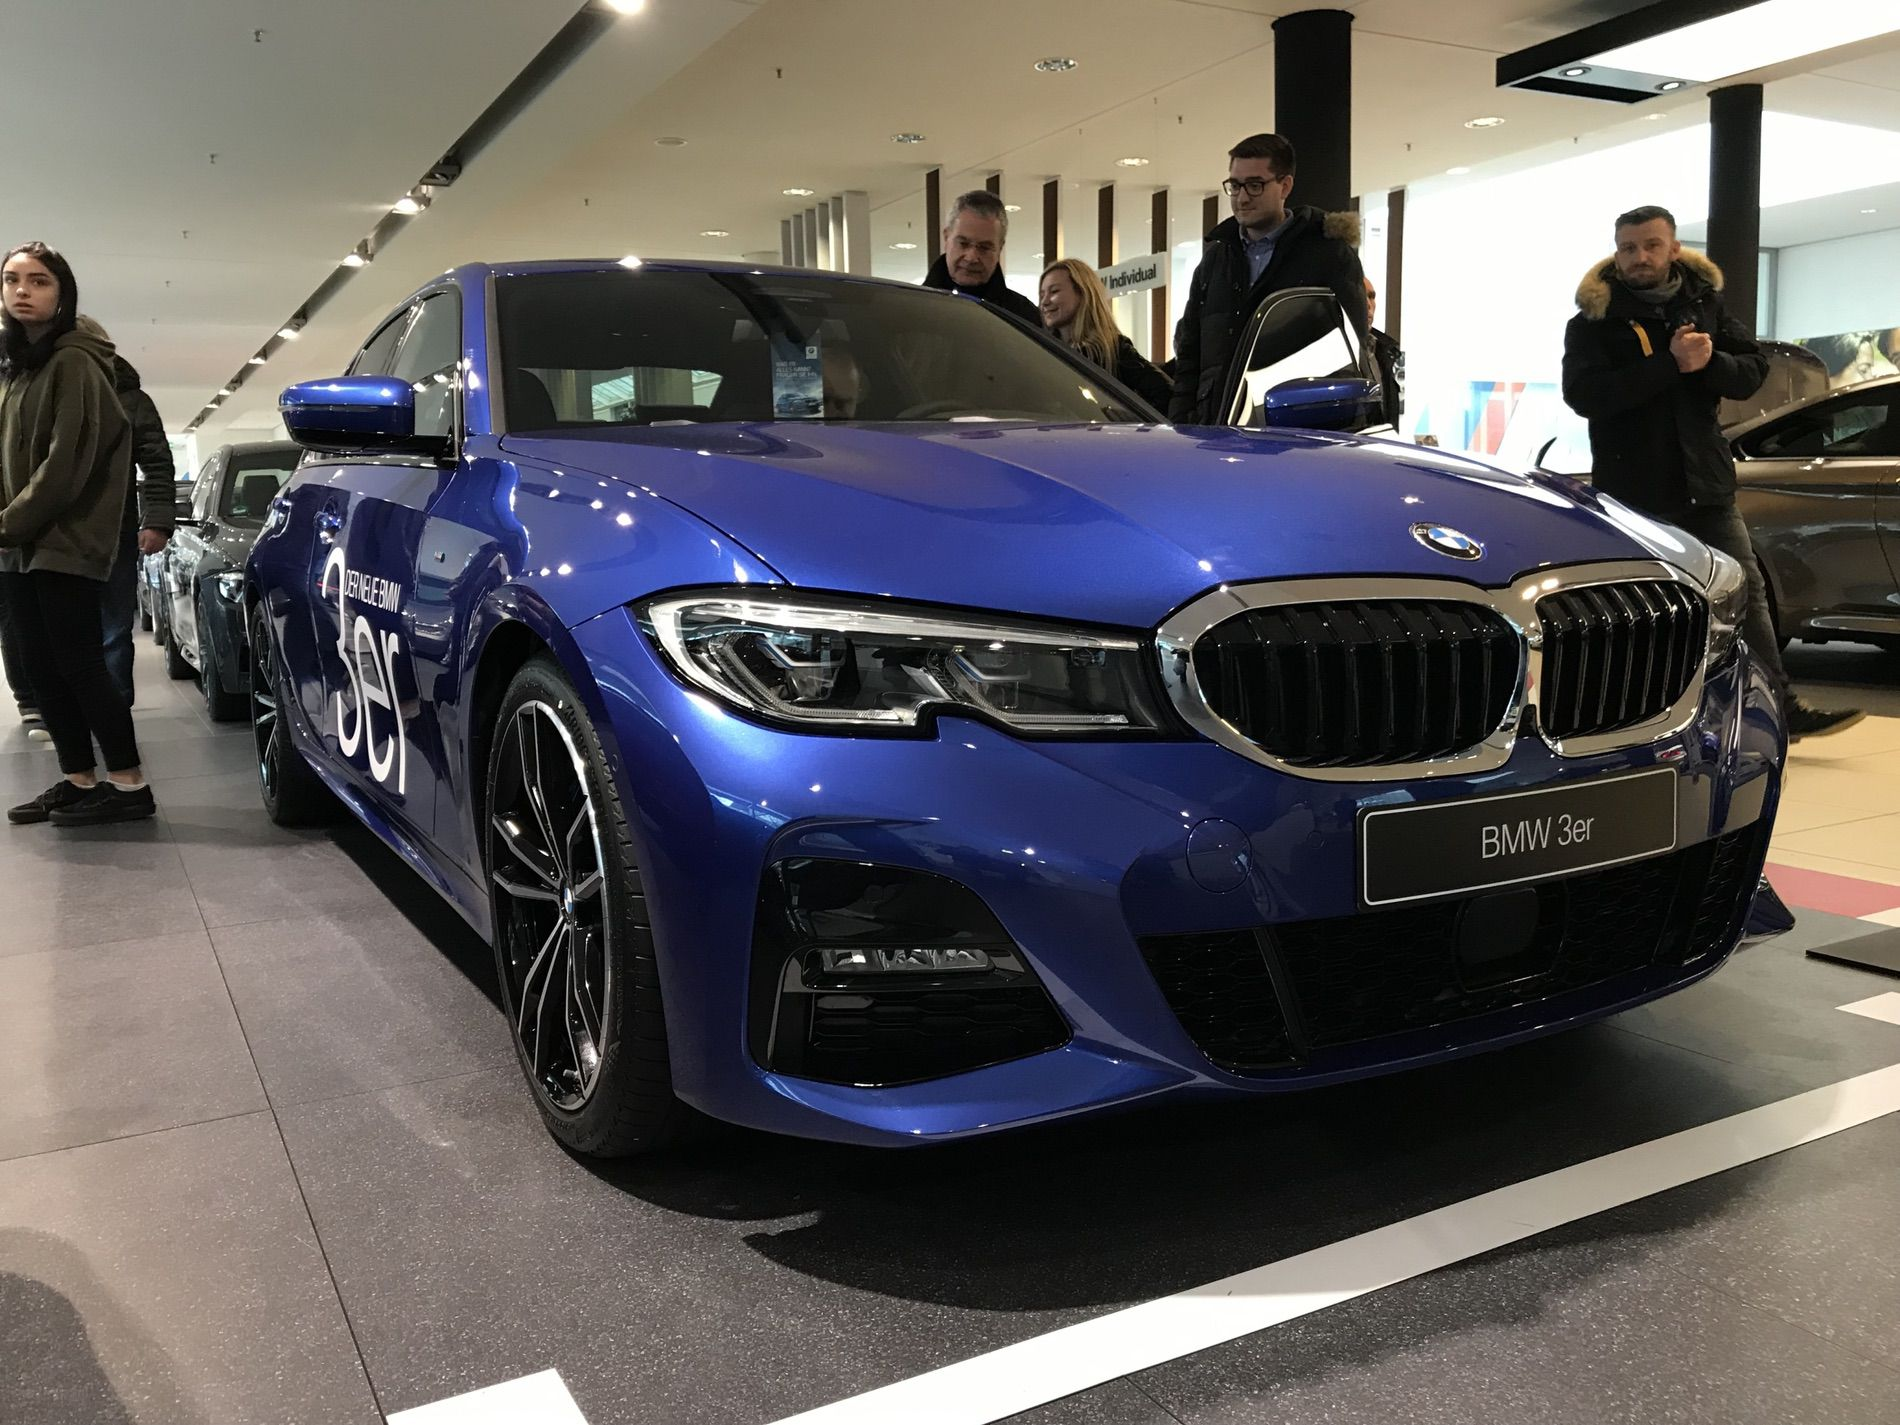 Bmw Niederlassung Munich Premiers All New Bmw 3 Series And Z4